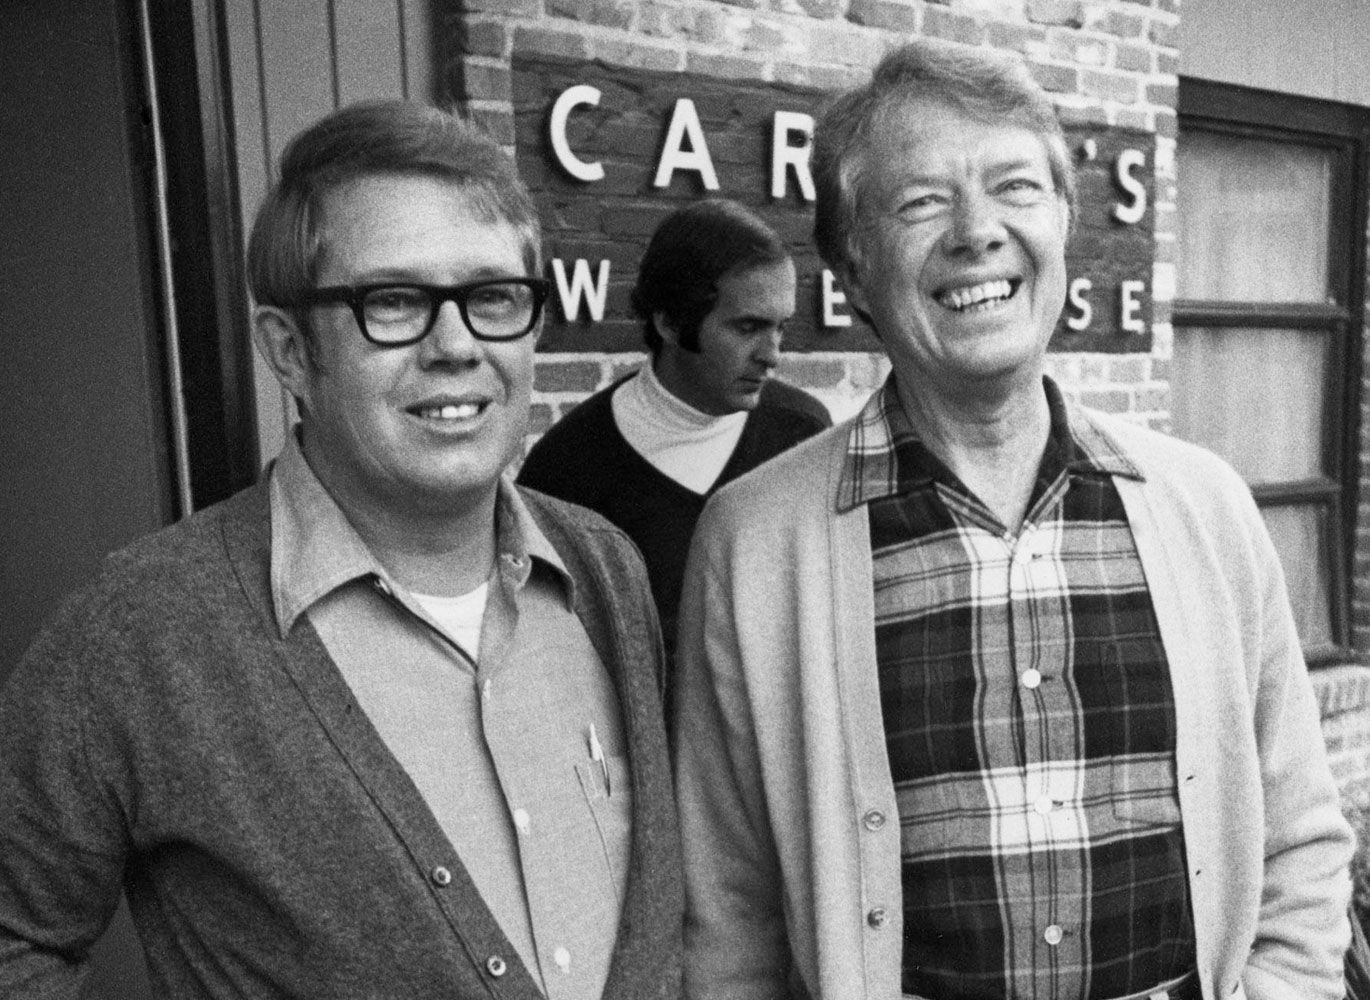 Billy and Jimmy Carter